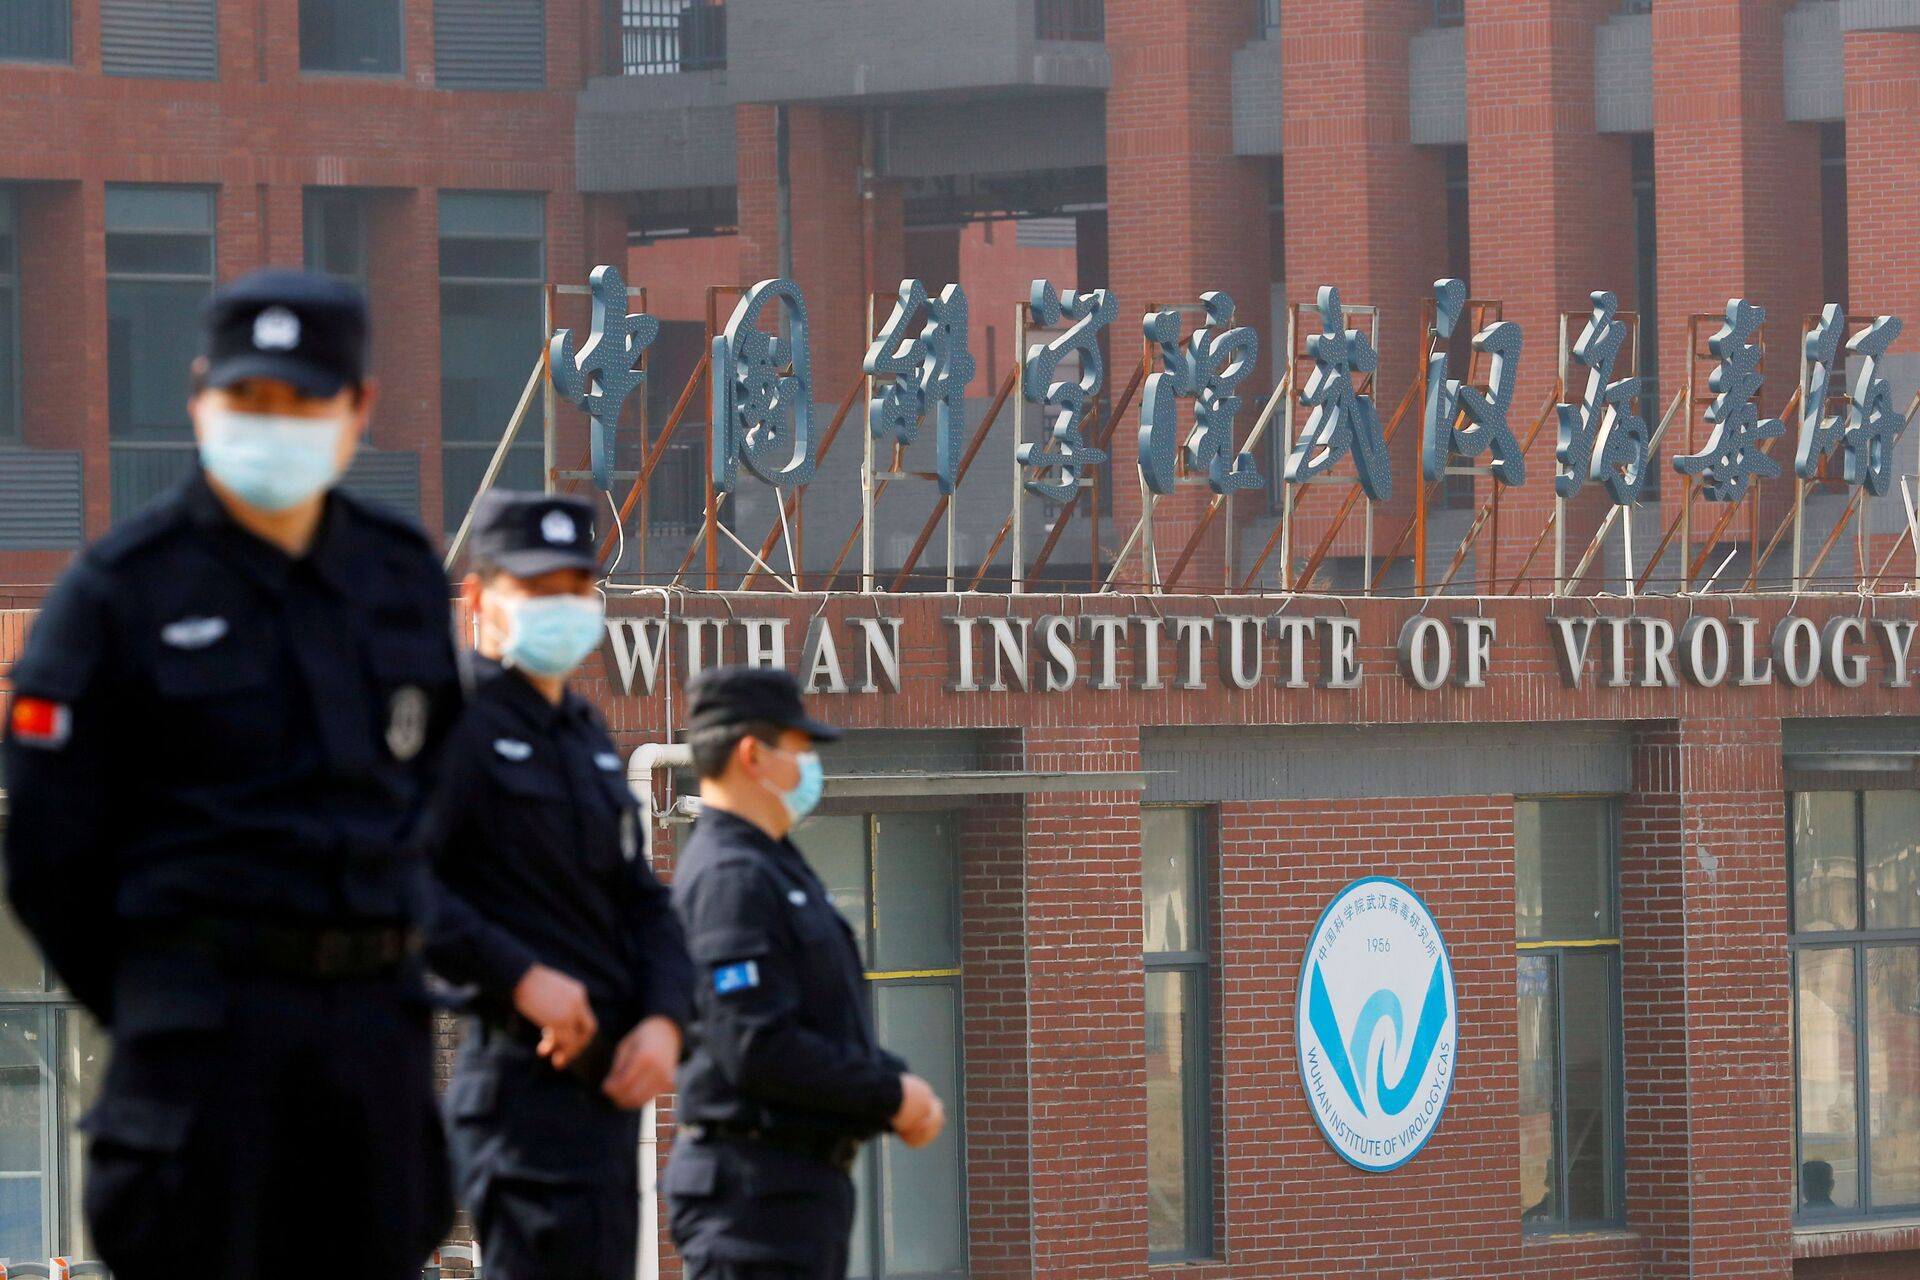 Security personnel keep watch outside the Wuhan Institute of Virology during the visit by the World Health Organization (WHO) team tasked with investigating the origins of the coronavirus disease (COVID-19), inWuhan, Hubei province, China February 3, 2021.  - Sputnik International, 1920, 07.09.2021